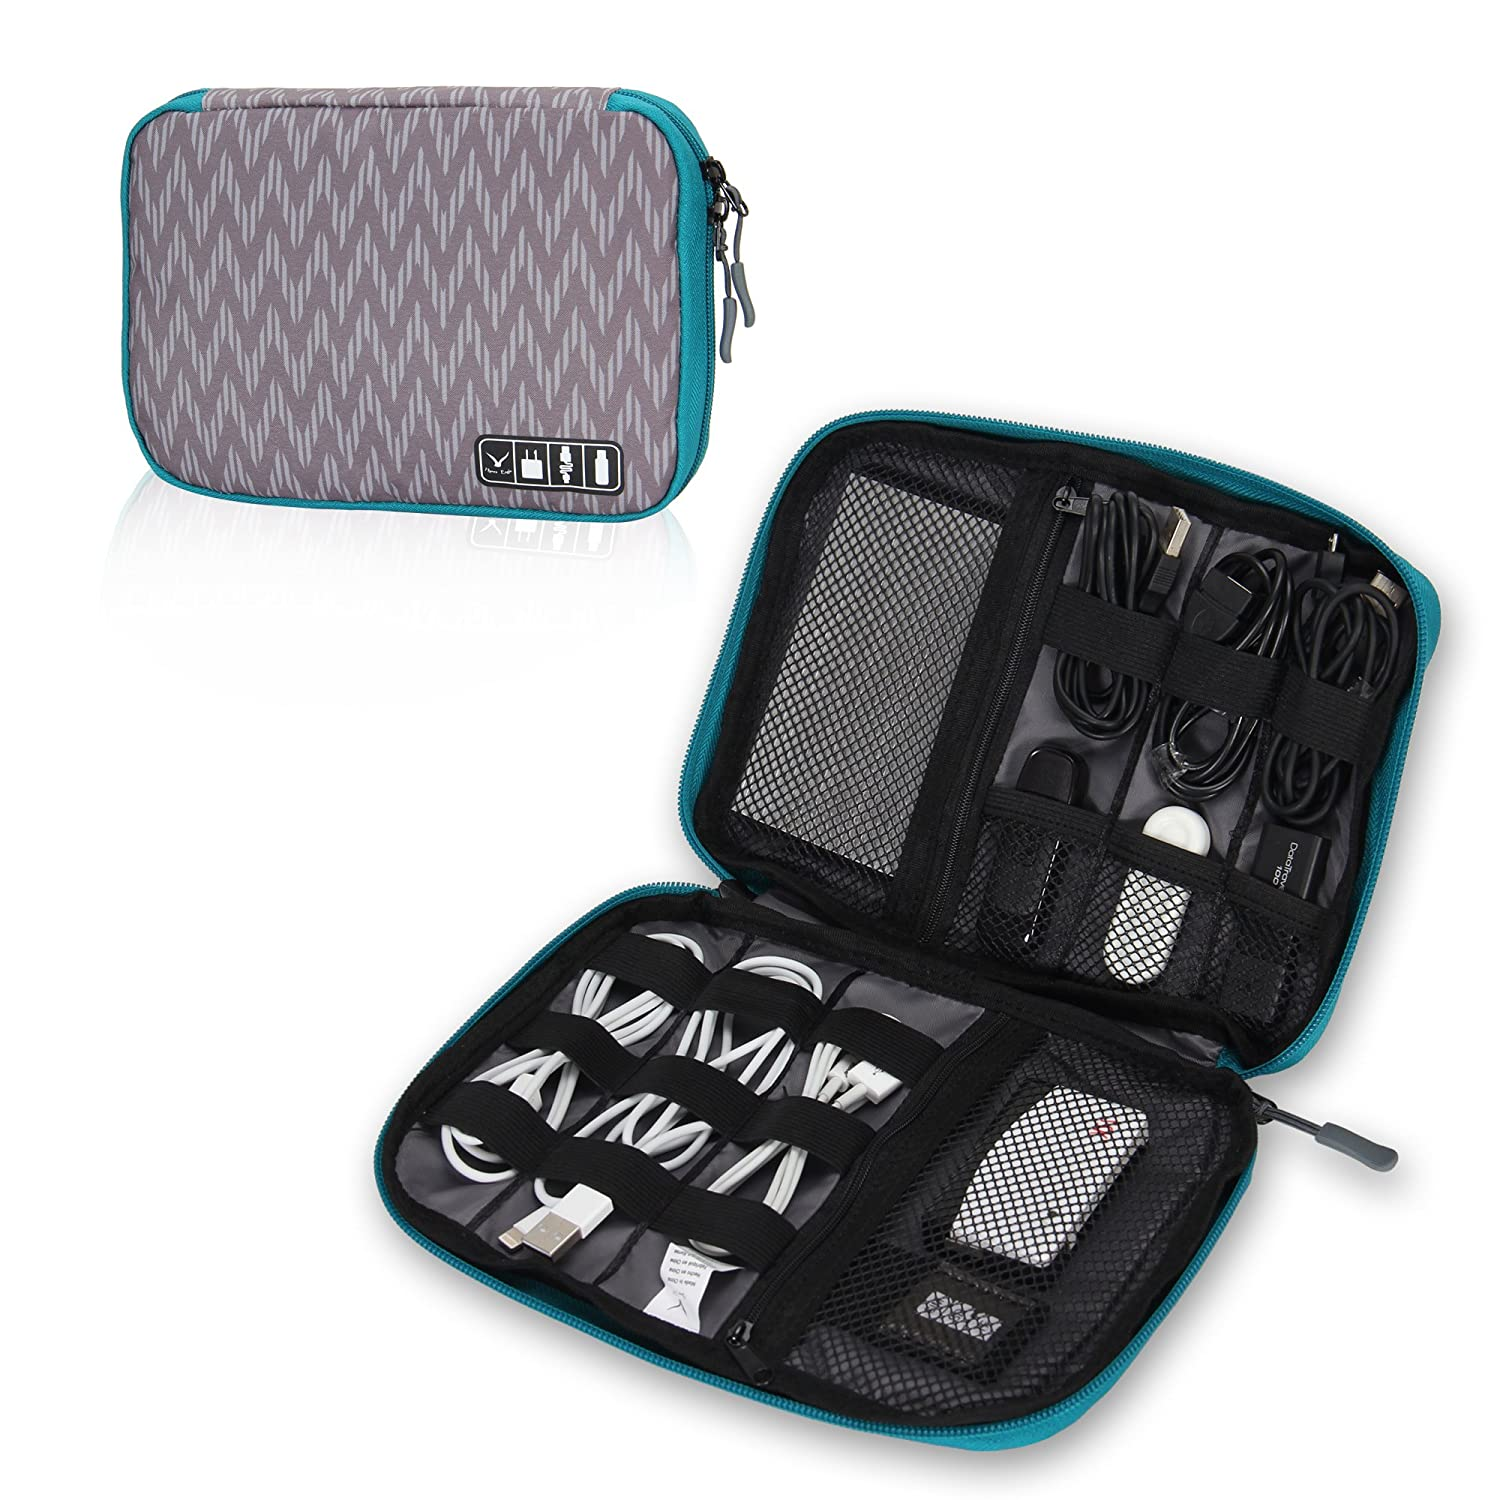 Charge and Cable Hynes Eagle Travel Universal Cable Organizer Electronics Accessories Cases for Various USB Phone Monochrome